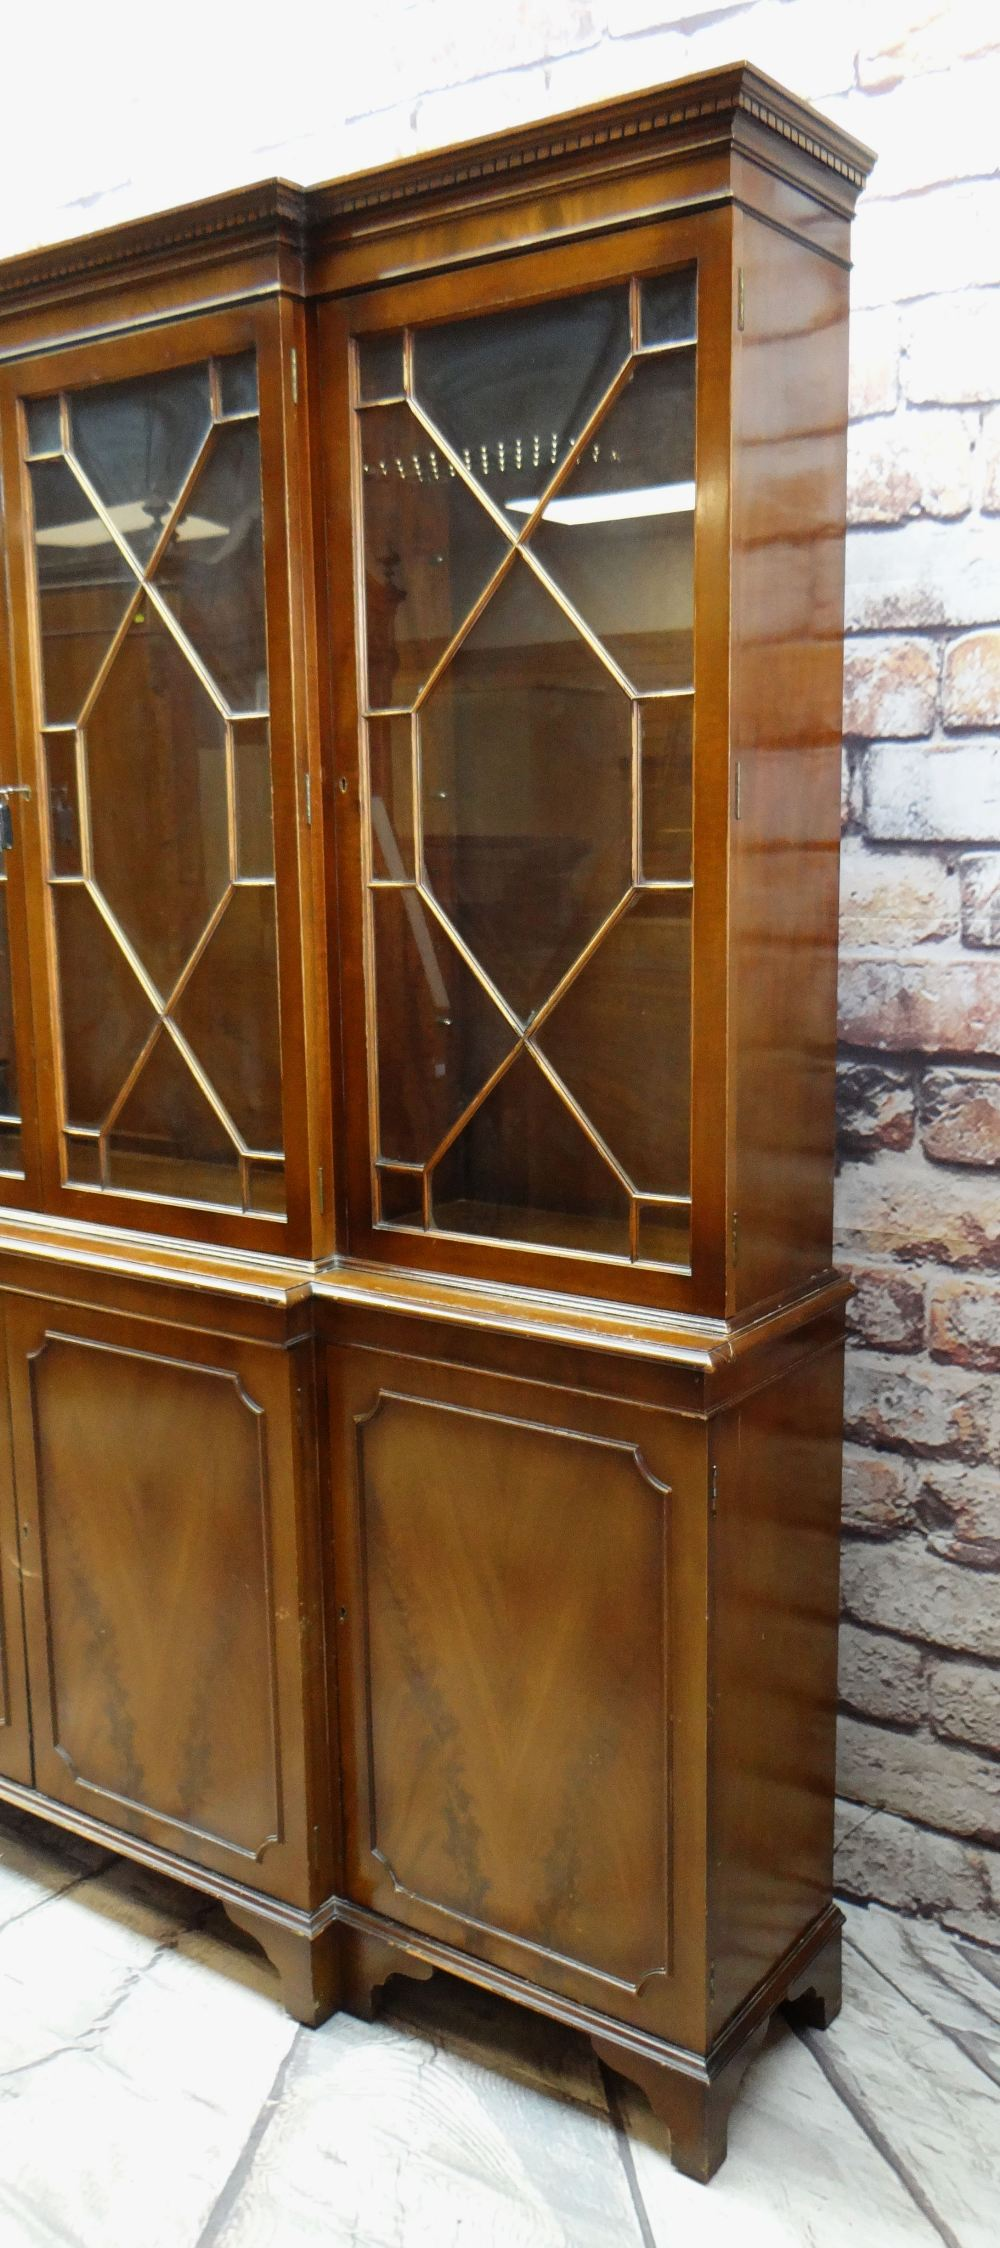 MODERN REPRODUCTION GEORGIAN-STYLE BREAKFRONT BOOKCASE, 196 x 36 x 201cms Condition: generally - Image 3 of 12